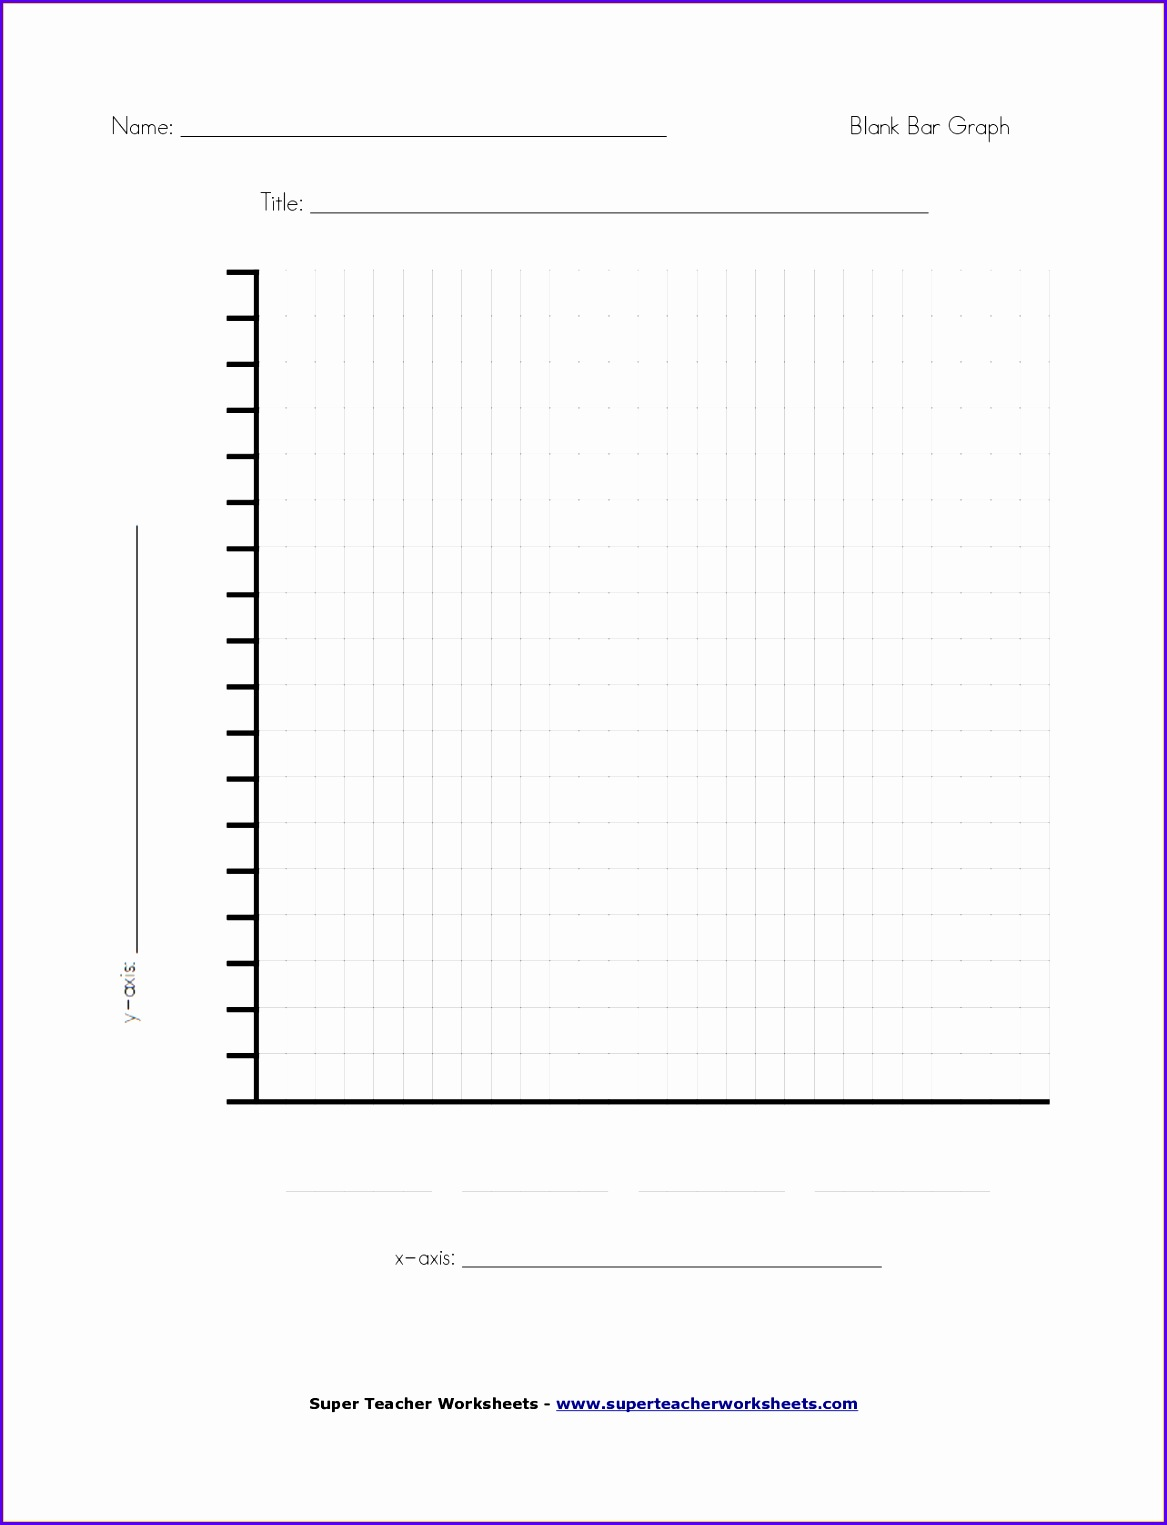 7 Excel Bar Graph Templates